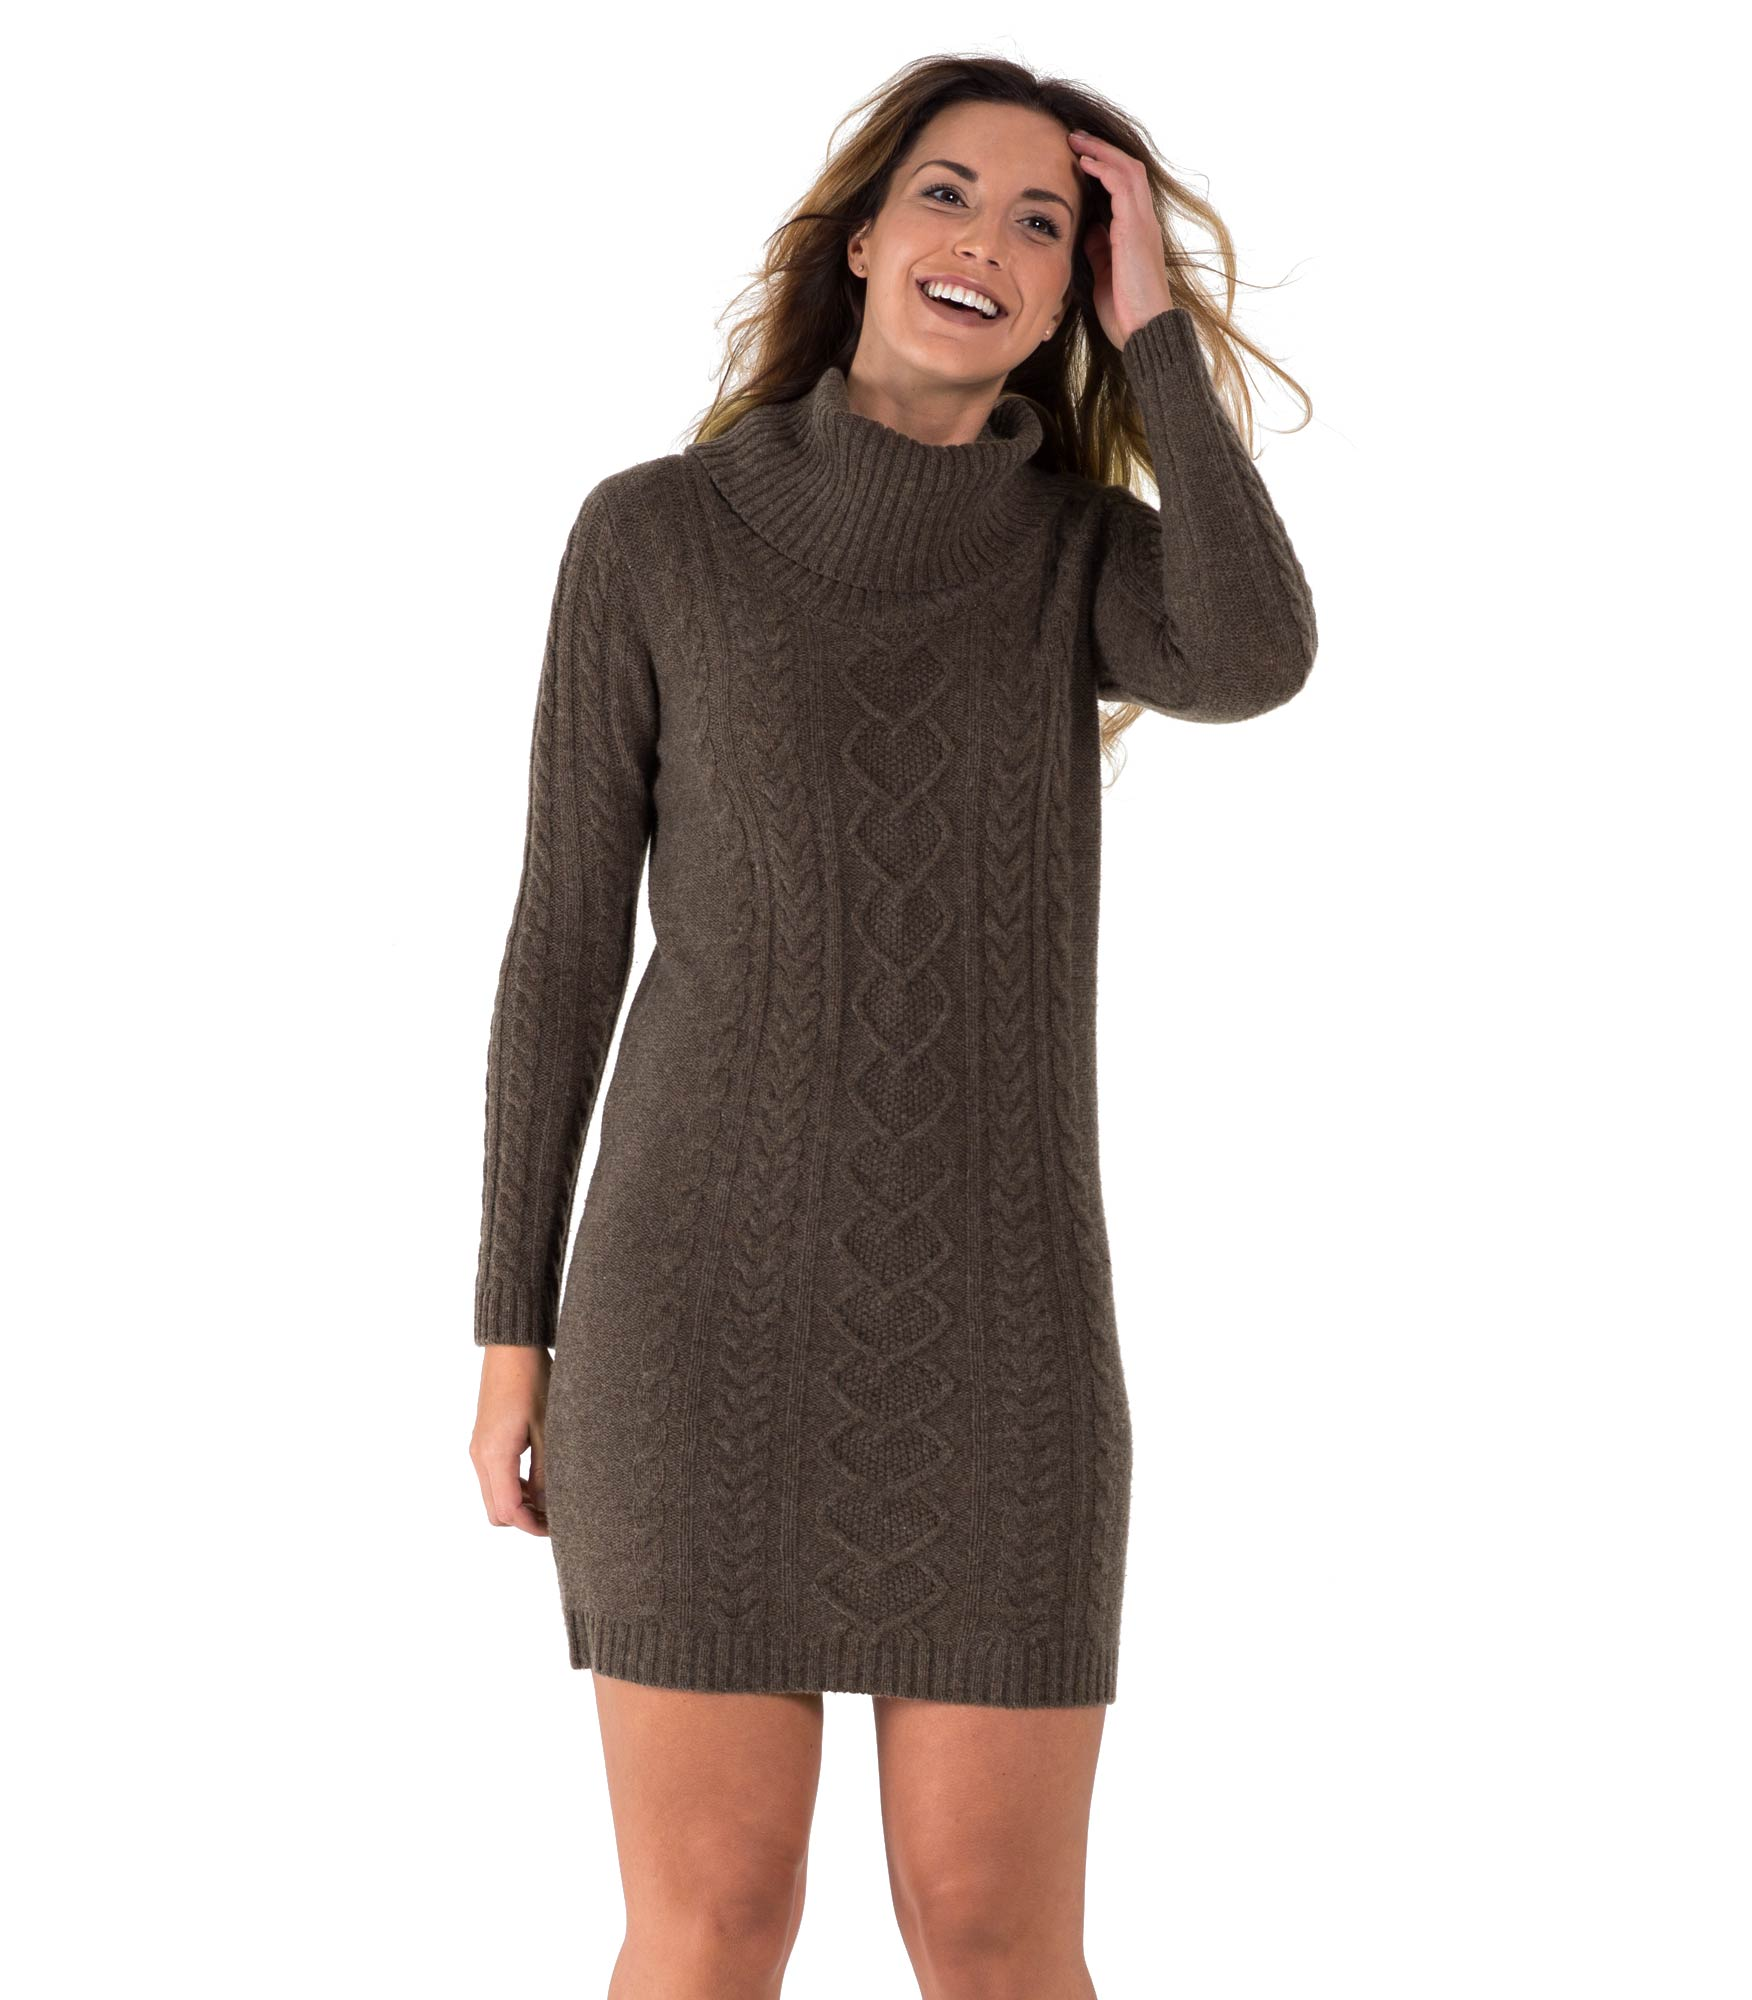 WOMENS SWEATERS. Luxuriously soft and sophisticated, discover our collection of women's sweaters at Johnstons of Elgin. From oversized sweaters to short sleeve sweaters, each piece is .